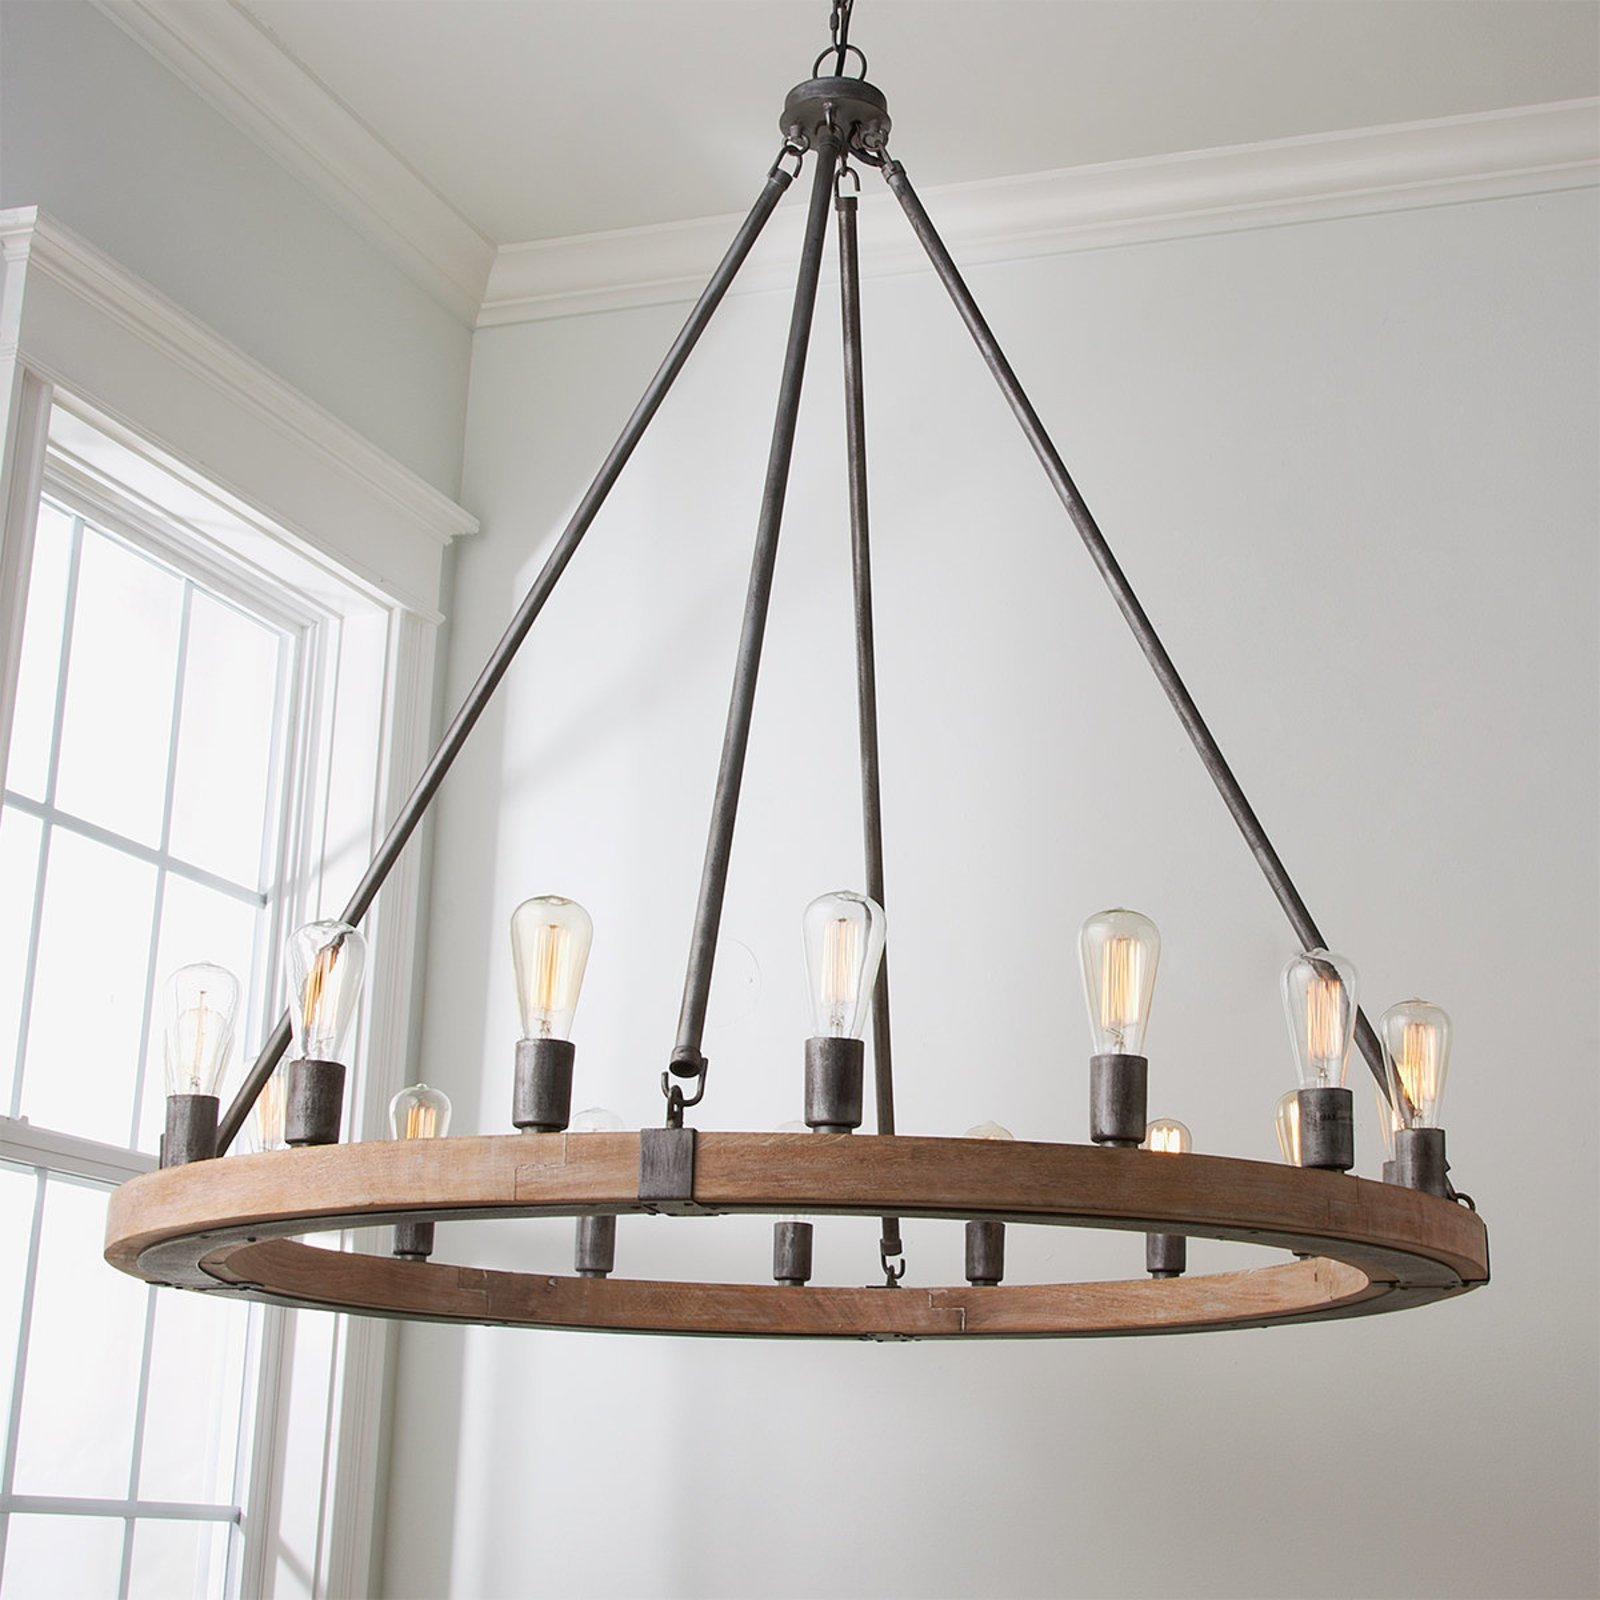 6 Arm Wooden Farmhouse Chandelier Diressed Black Over Within Shayla 12 Light Wagon Wheel Chandeliers (View 1 of 30)